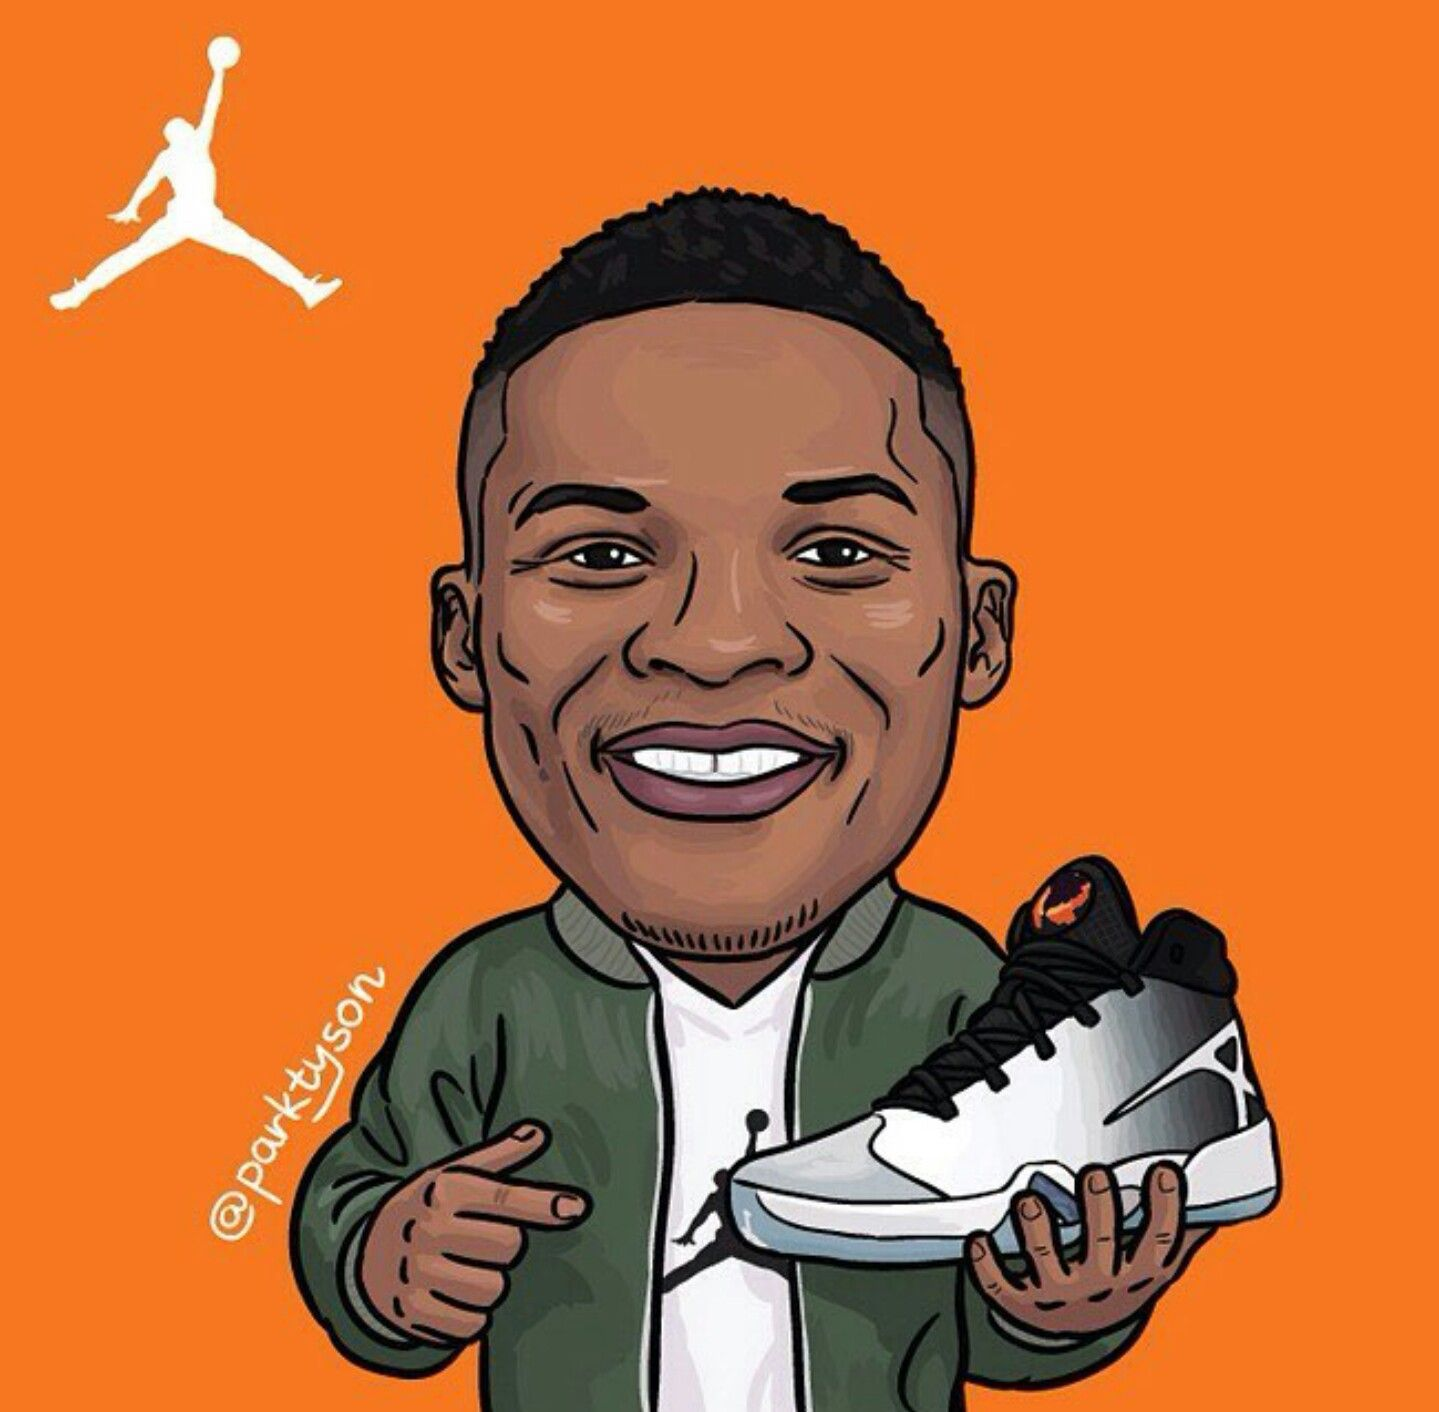 Pin by Jeremy Cavazos on Cool NBA player cartoons ...